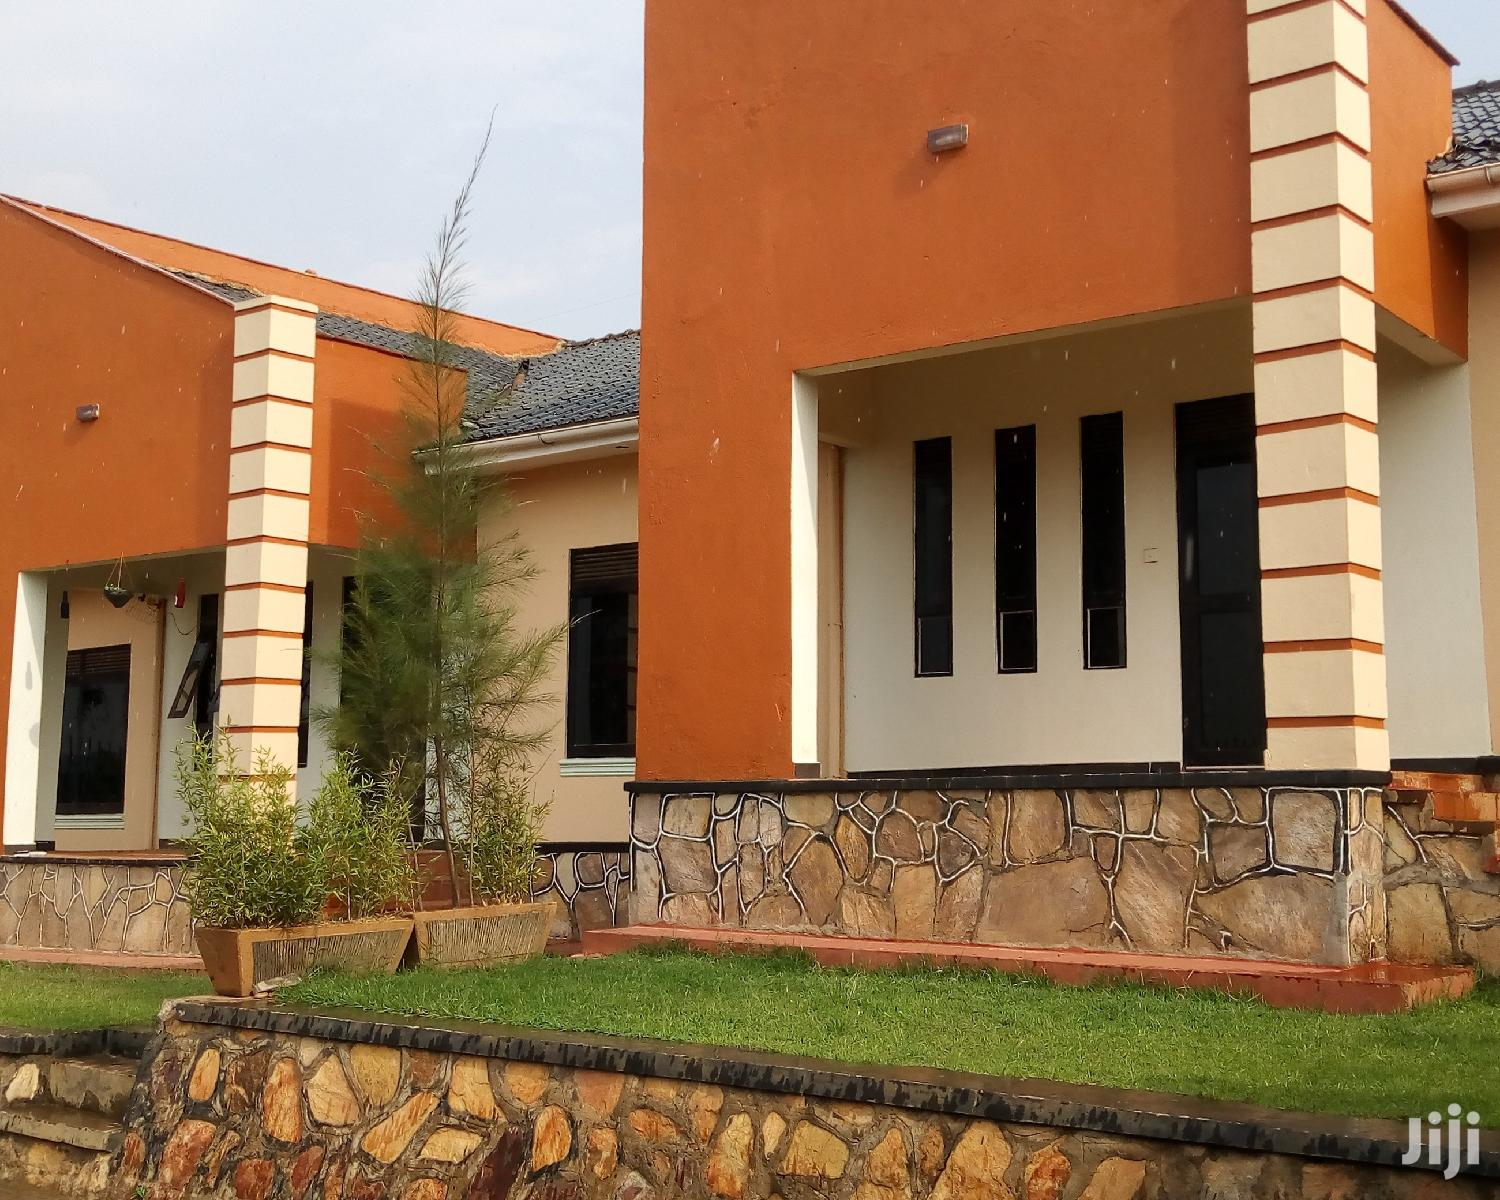 Rentals In Kyanja Kungu For Sale | Houses & Apartments For Sale for sale in Kampala, Central Region, Uganda